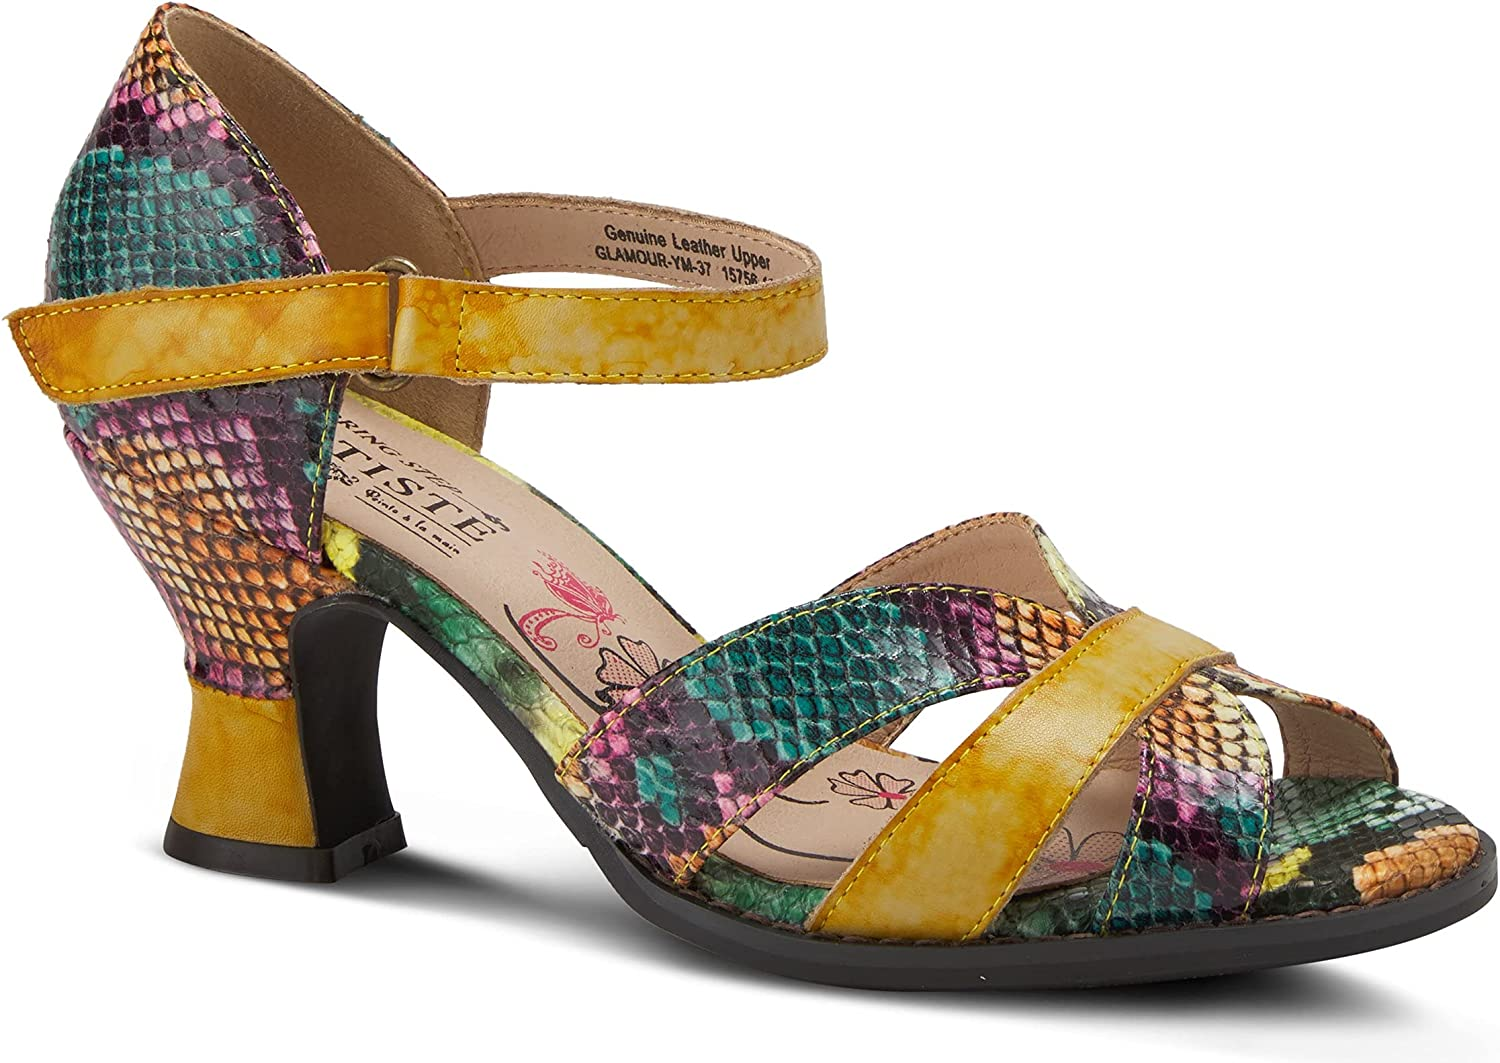 Don't miss overseas the campaign L'Artiste Glamour Ankle Strap Sandal